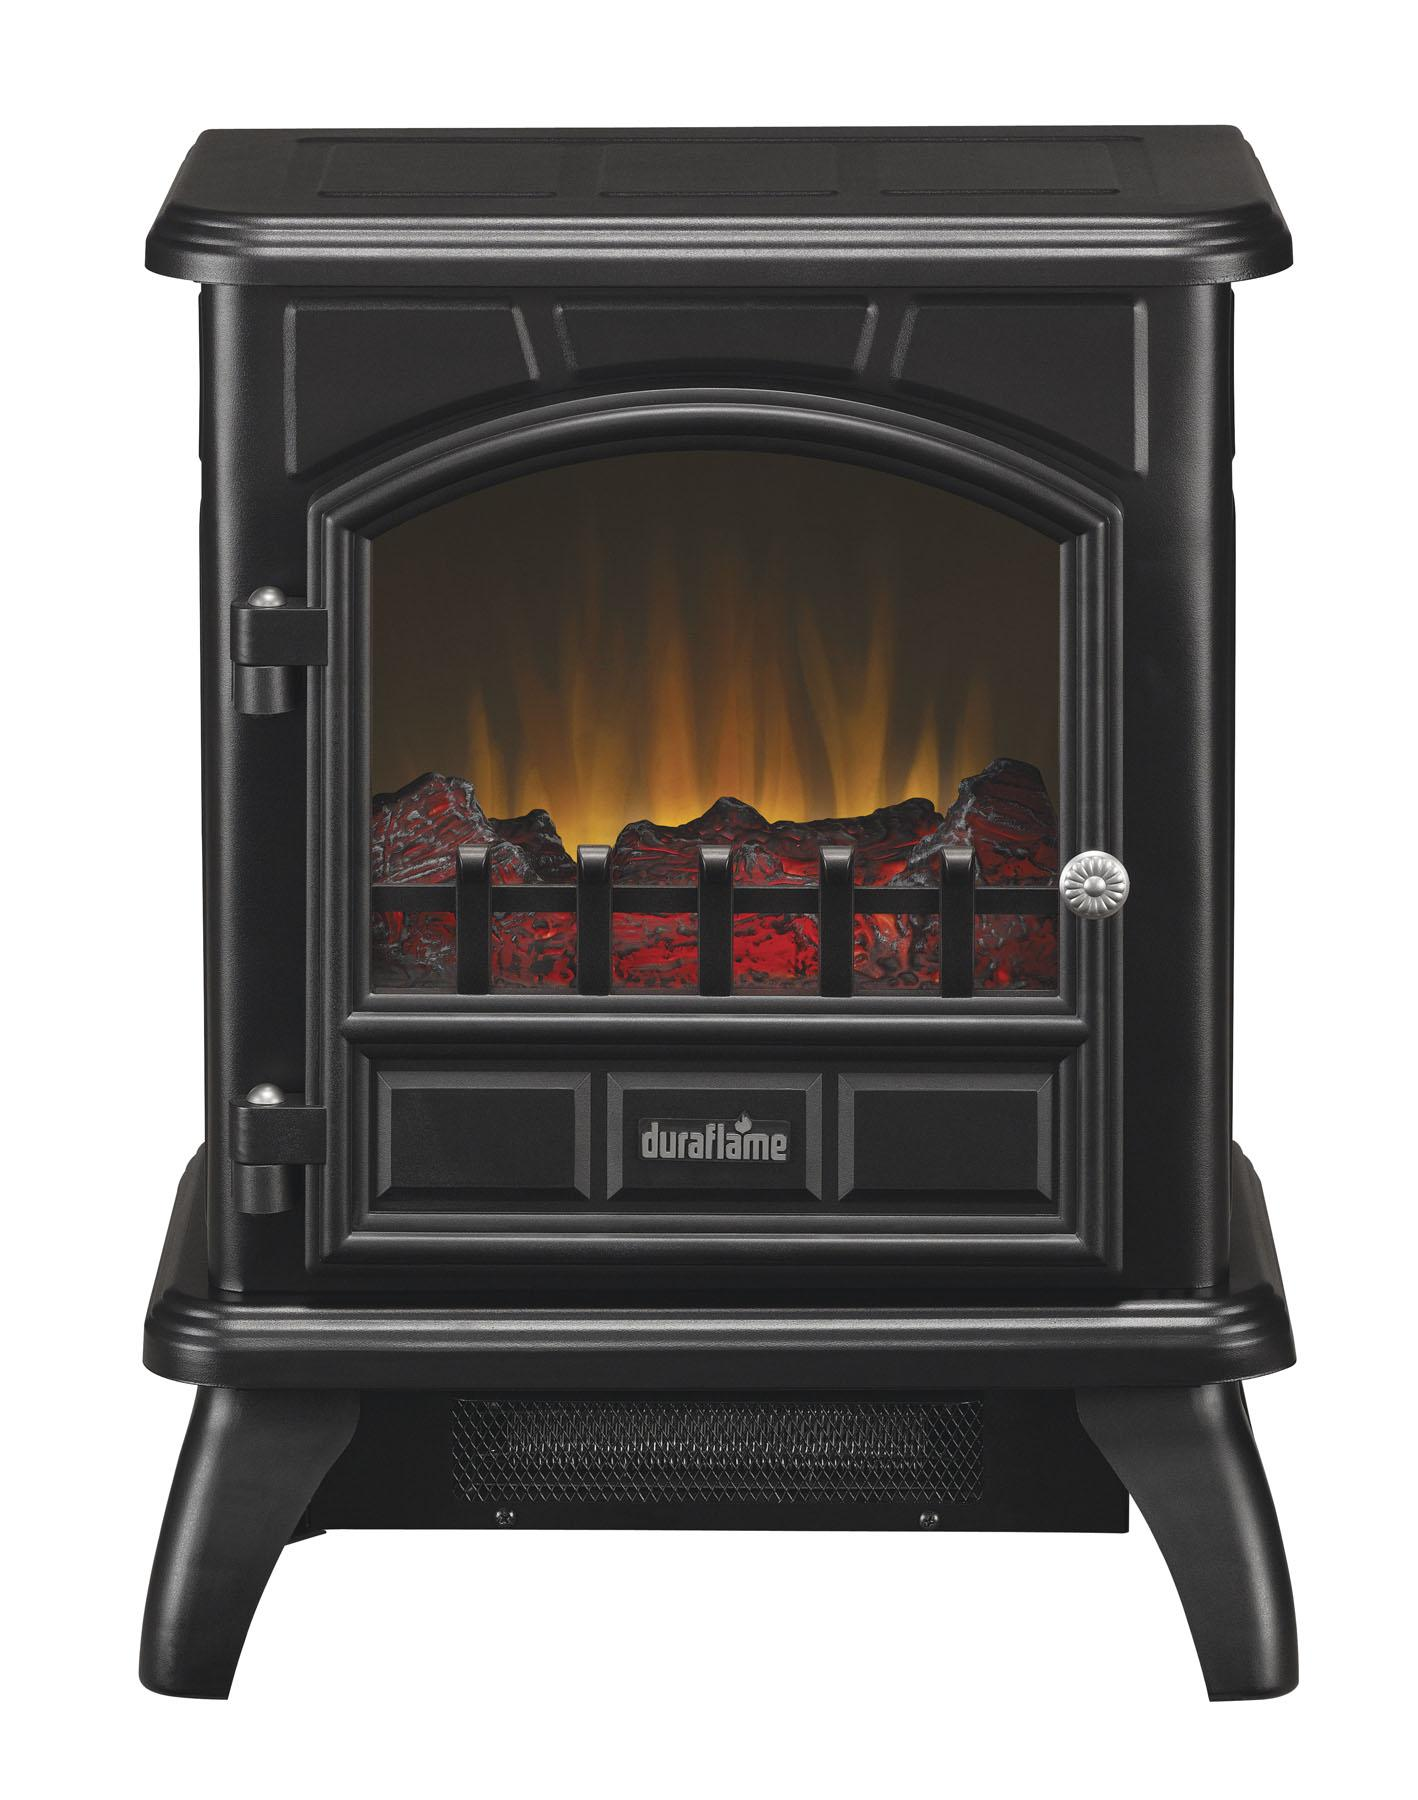 Duraflame Electric Stove In Black Dfs 500 0 Space Heaters